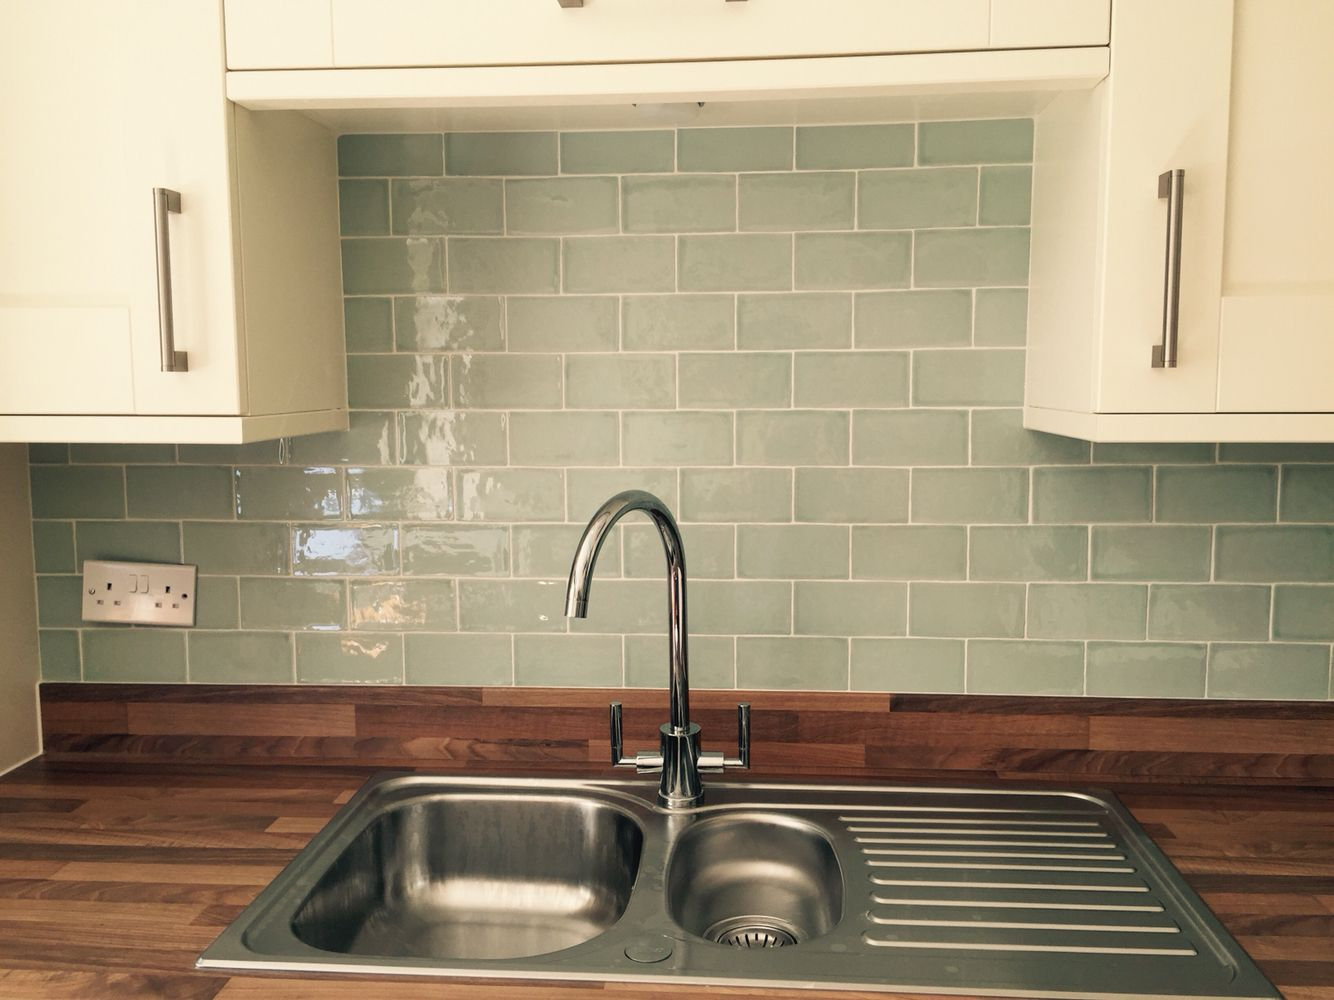 Kitchen Tiles And Splashbacks laura ashley eau de nil tile splashback | kitchen | pinterest